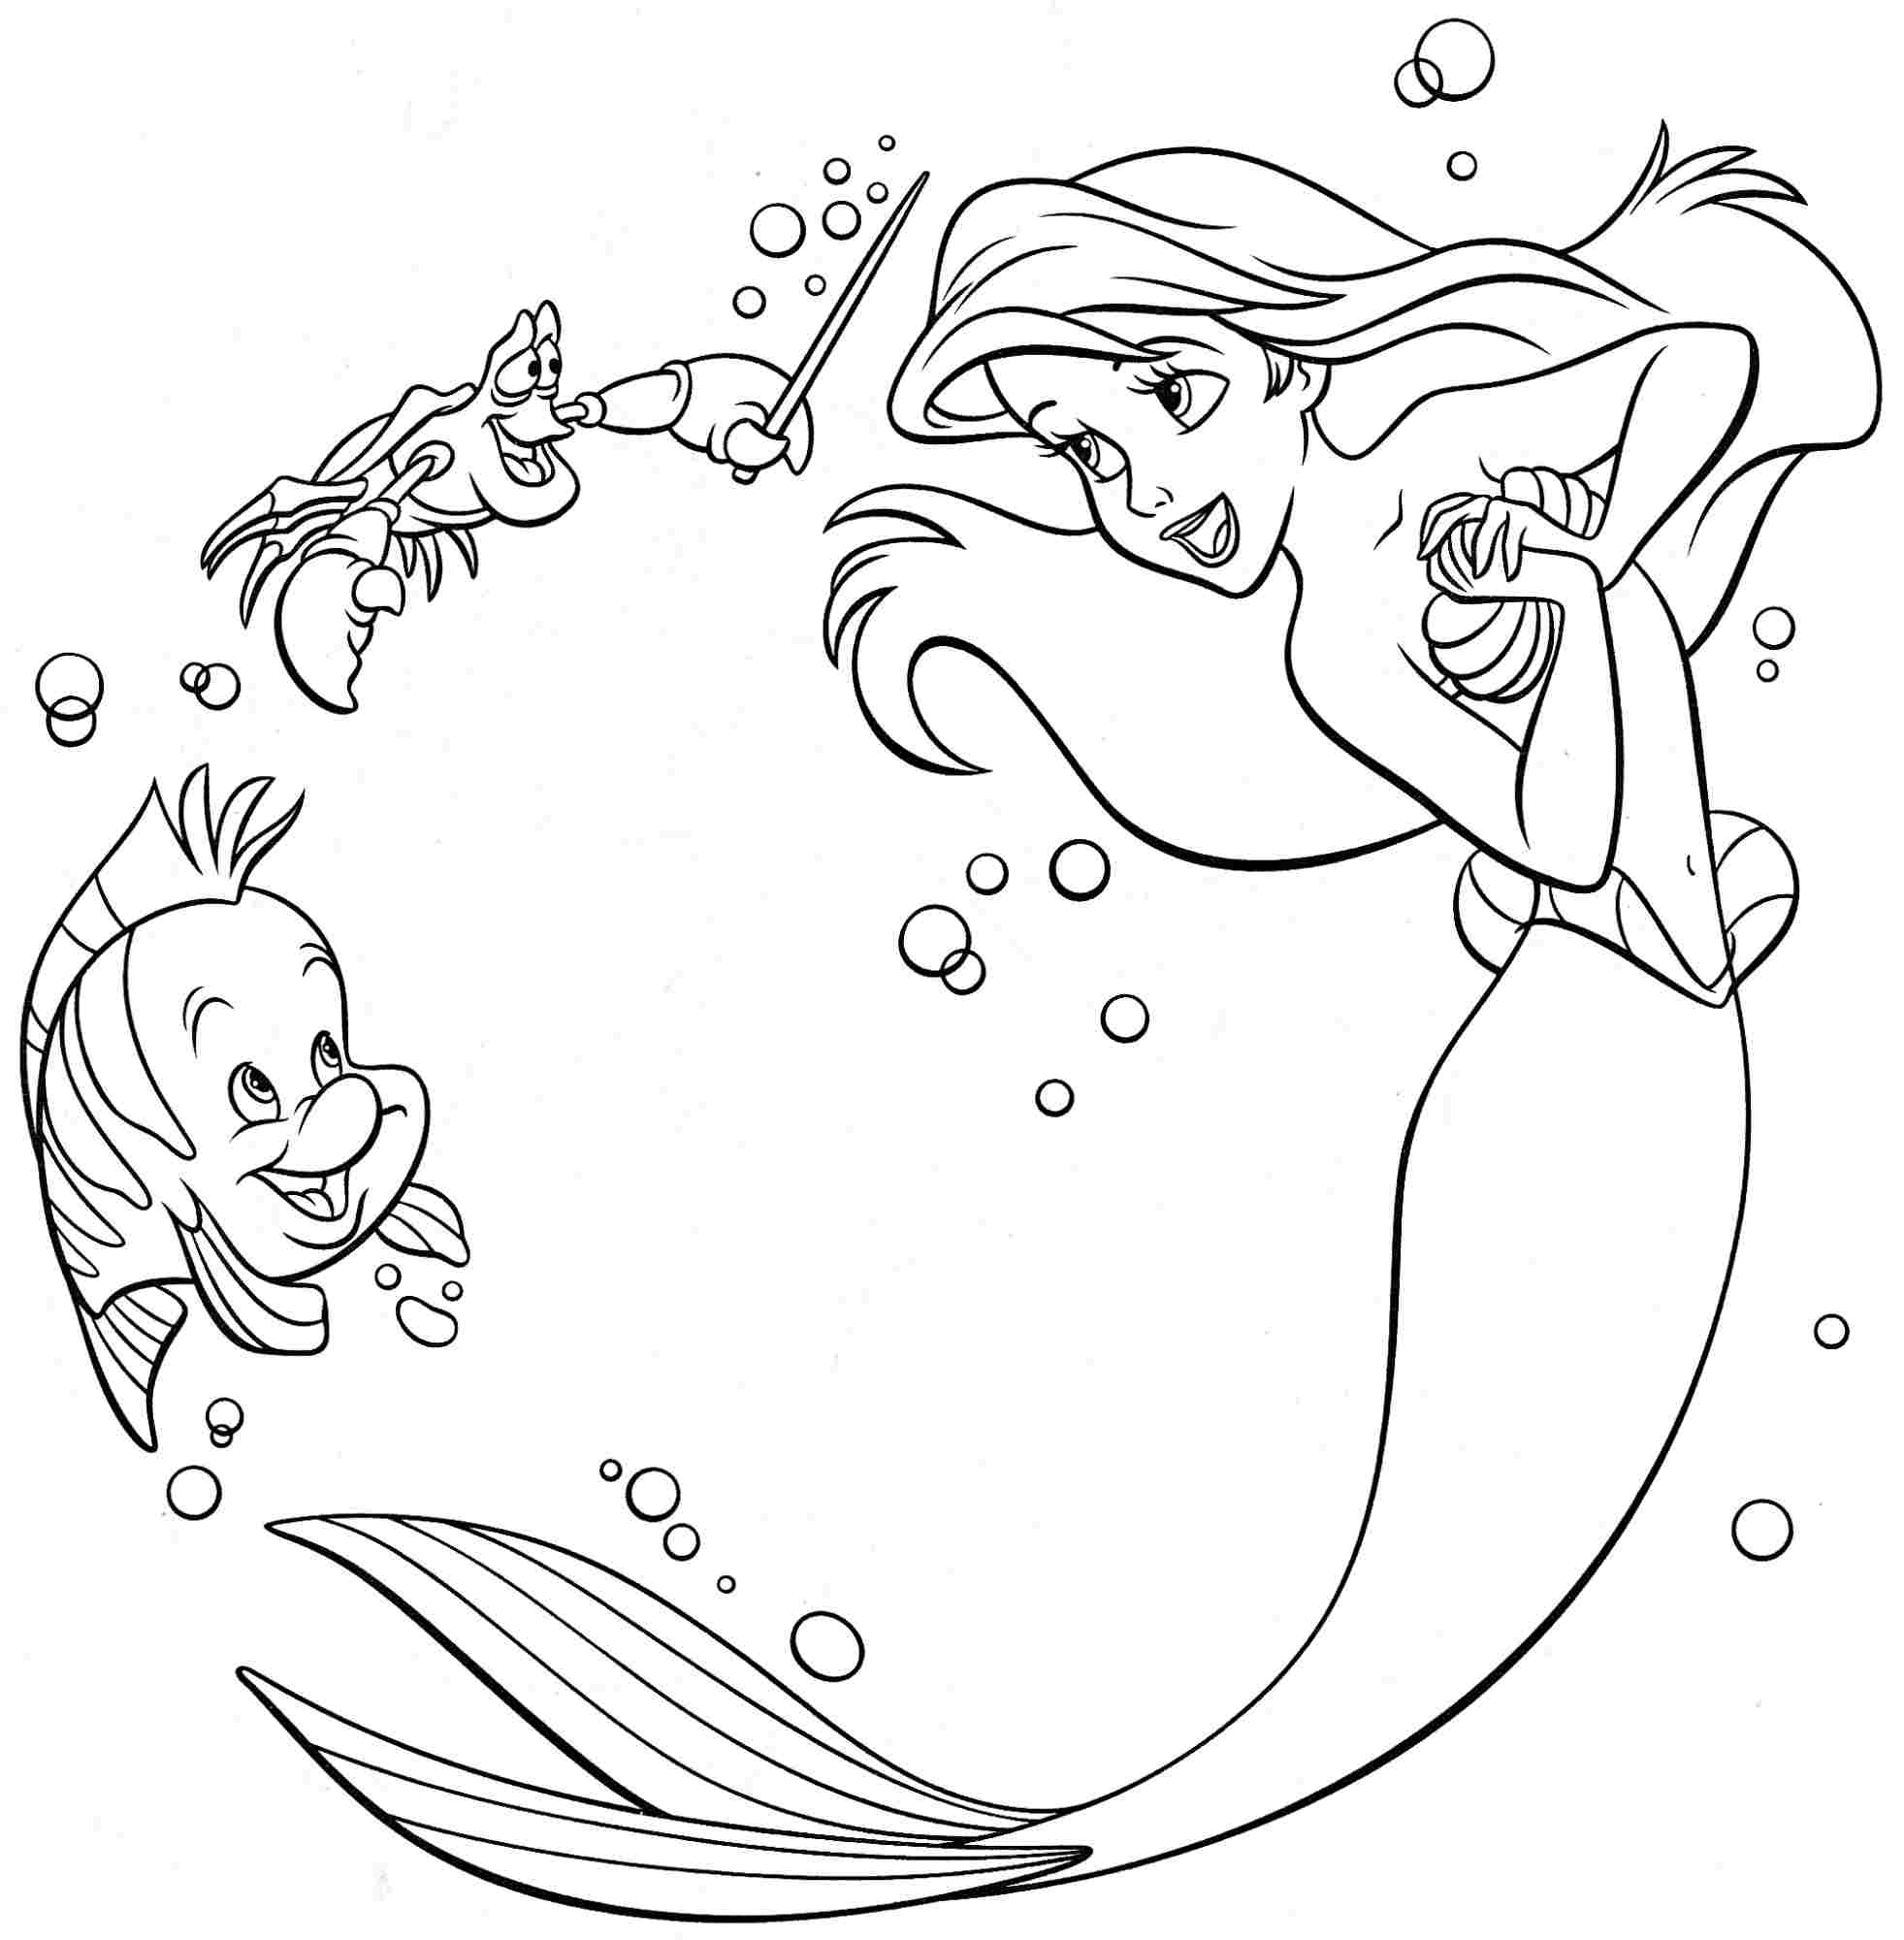 Little Mermaid Coloring Pages at GetDrawings | Free download